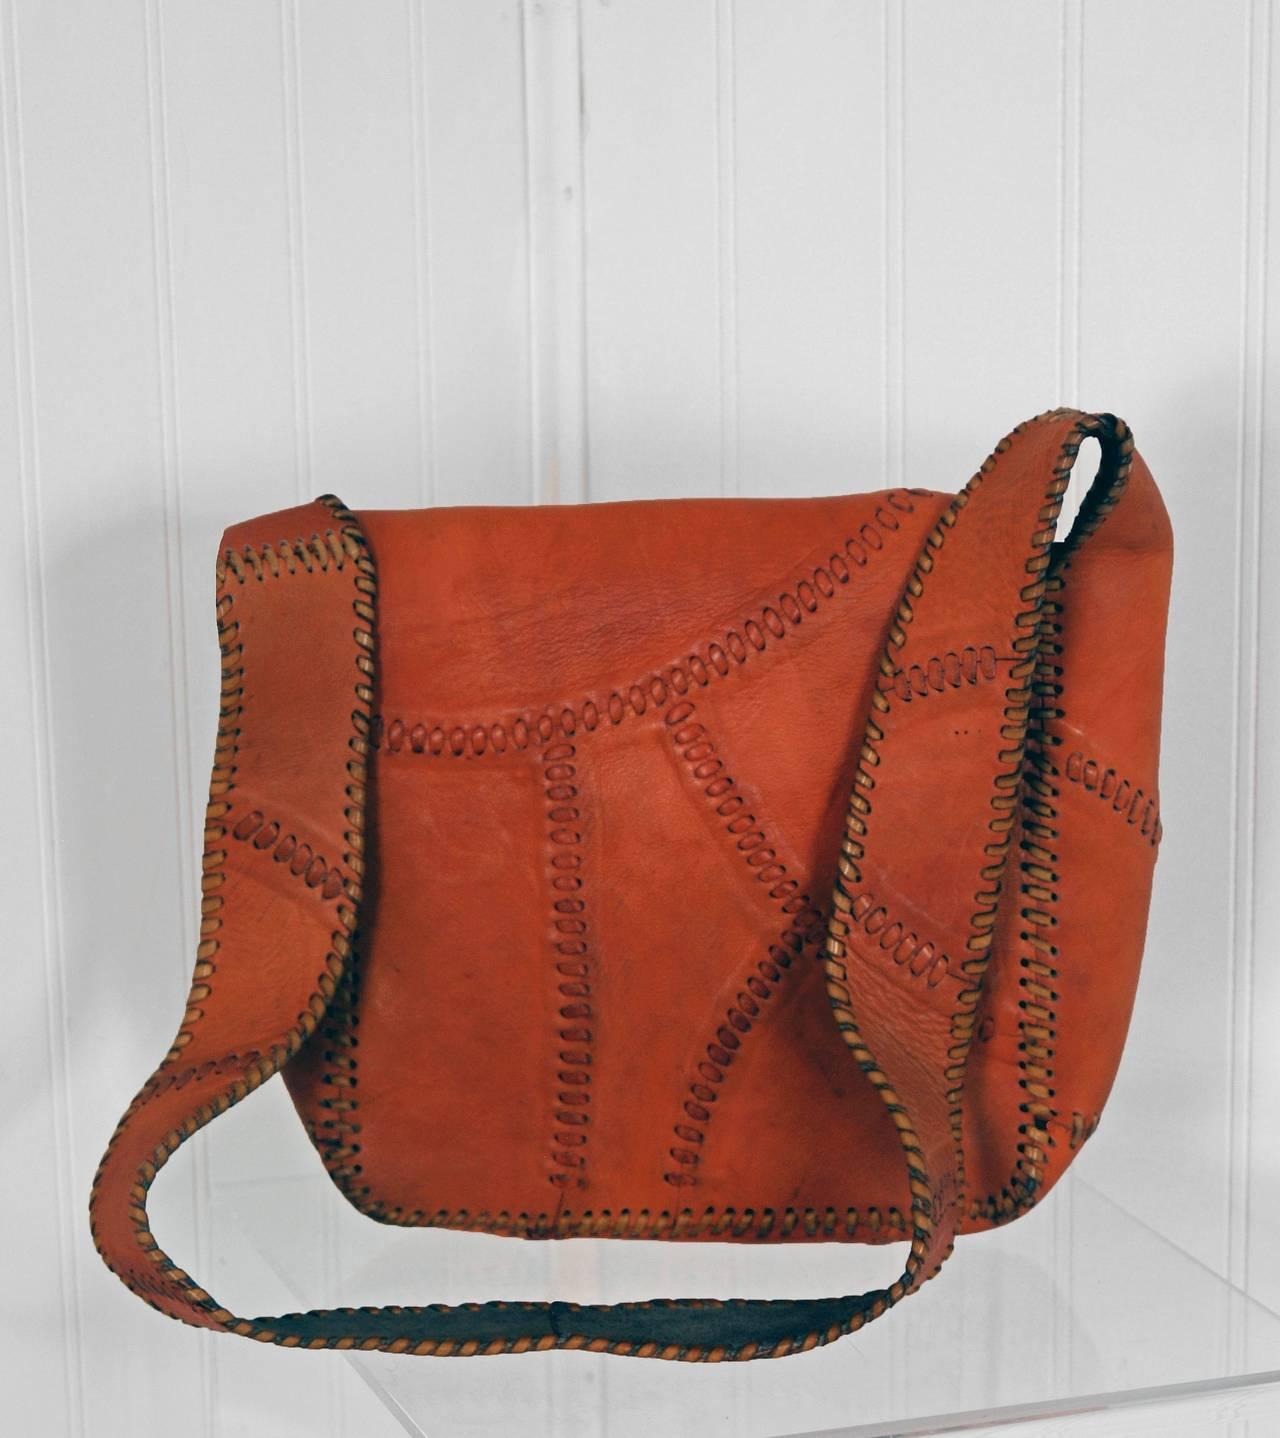 1970's Char Handpainted Whipstitched Leather Bohemian Hippie Messanger Bag Purse 5